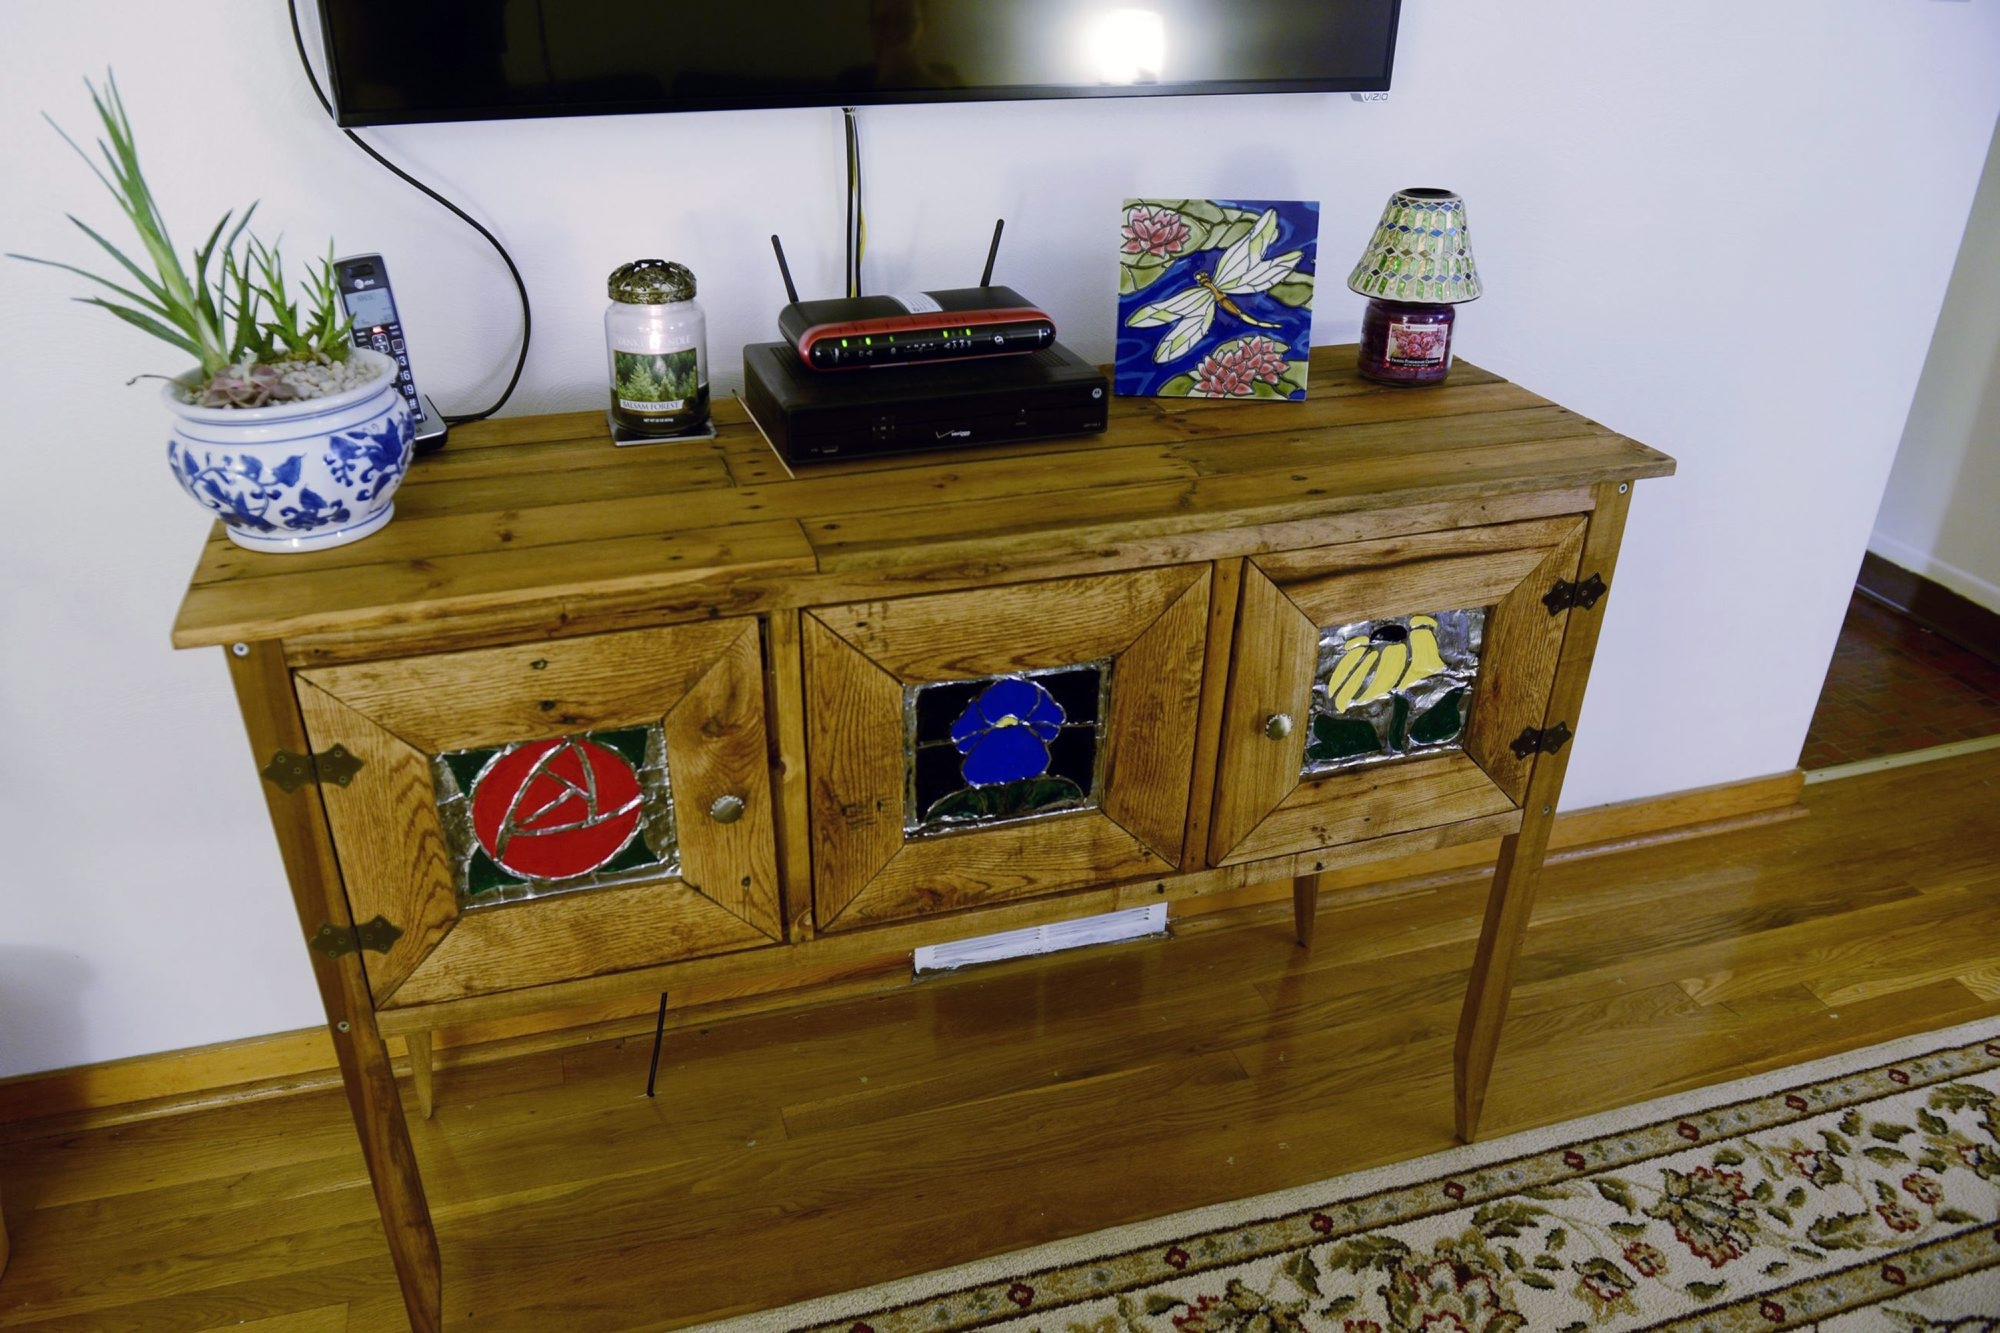 The Internet has allowed people around the world to share ideas for pallet projects. Dr. Alex Yergiyev, a pathologist at University of Pittsburgh Medical Center, made this buffet.